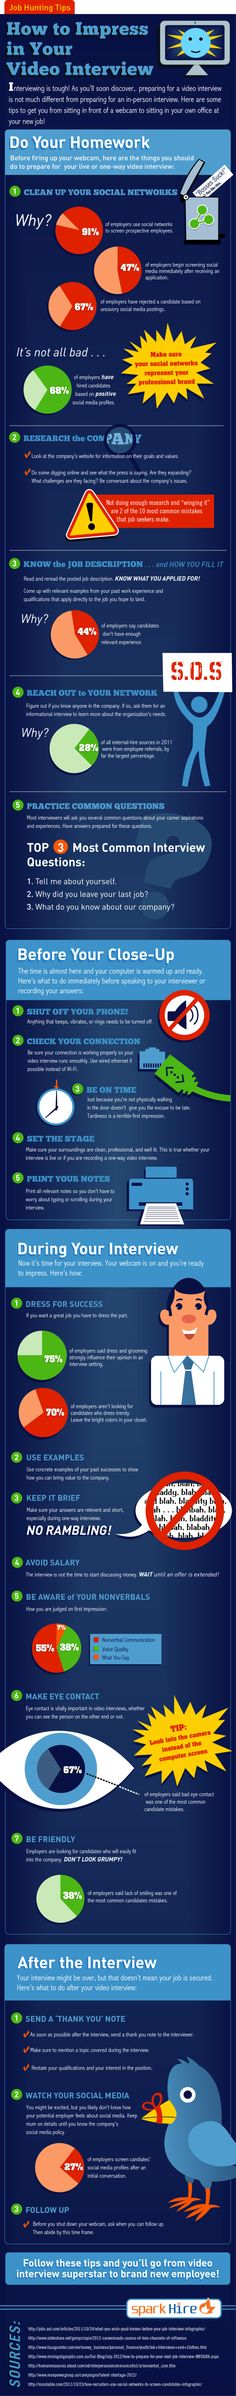 How To Impress In Your VideoInterview Infographic Roehampton